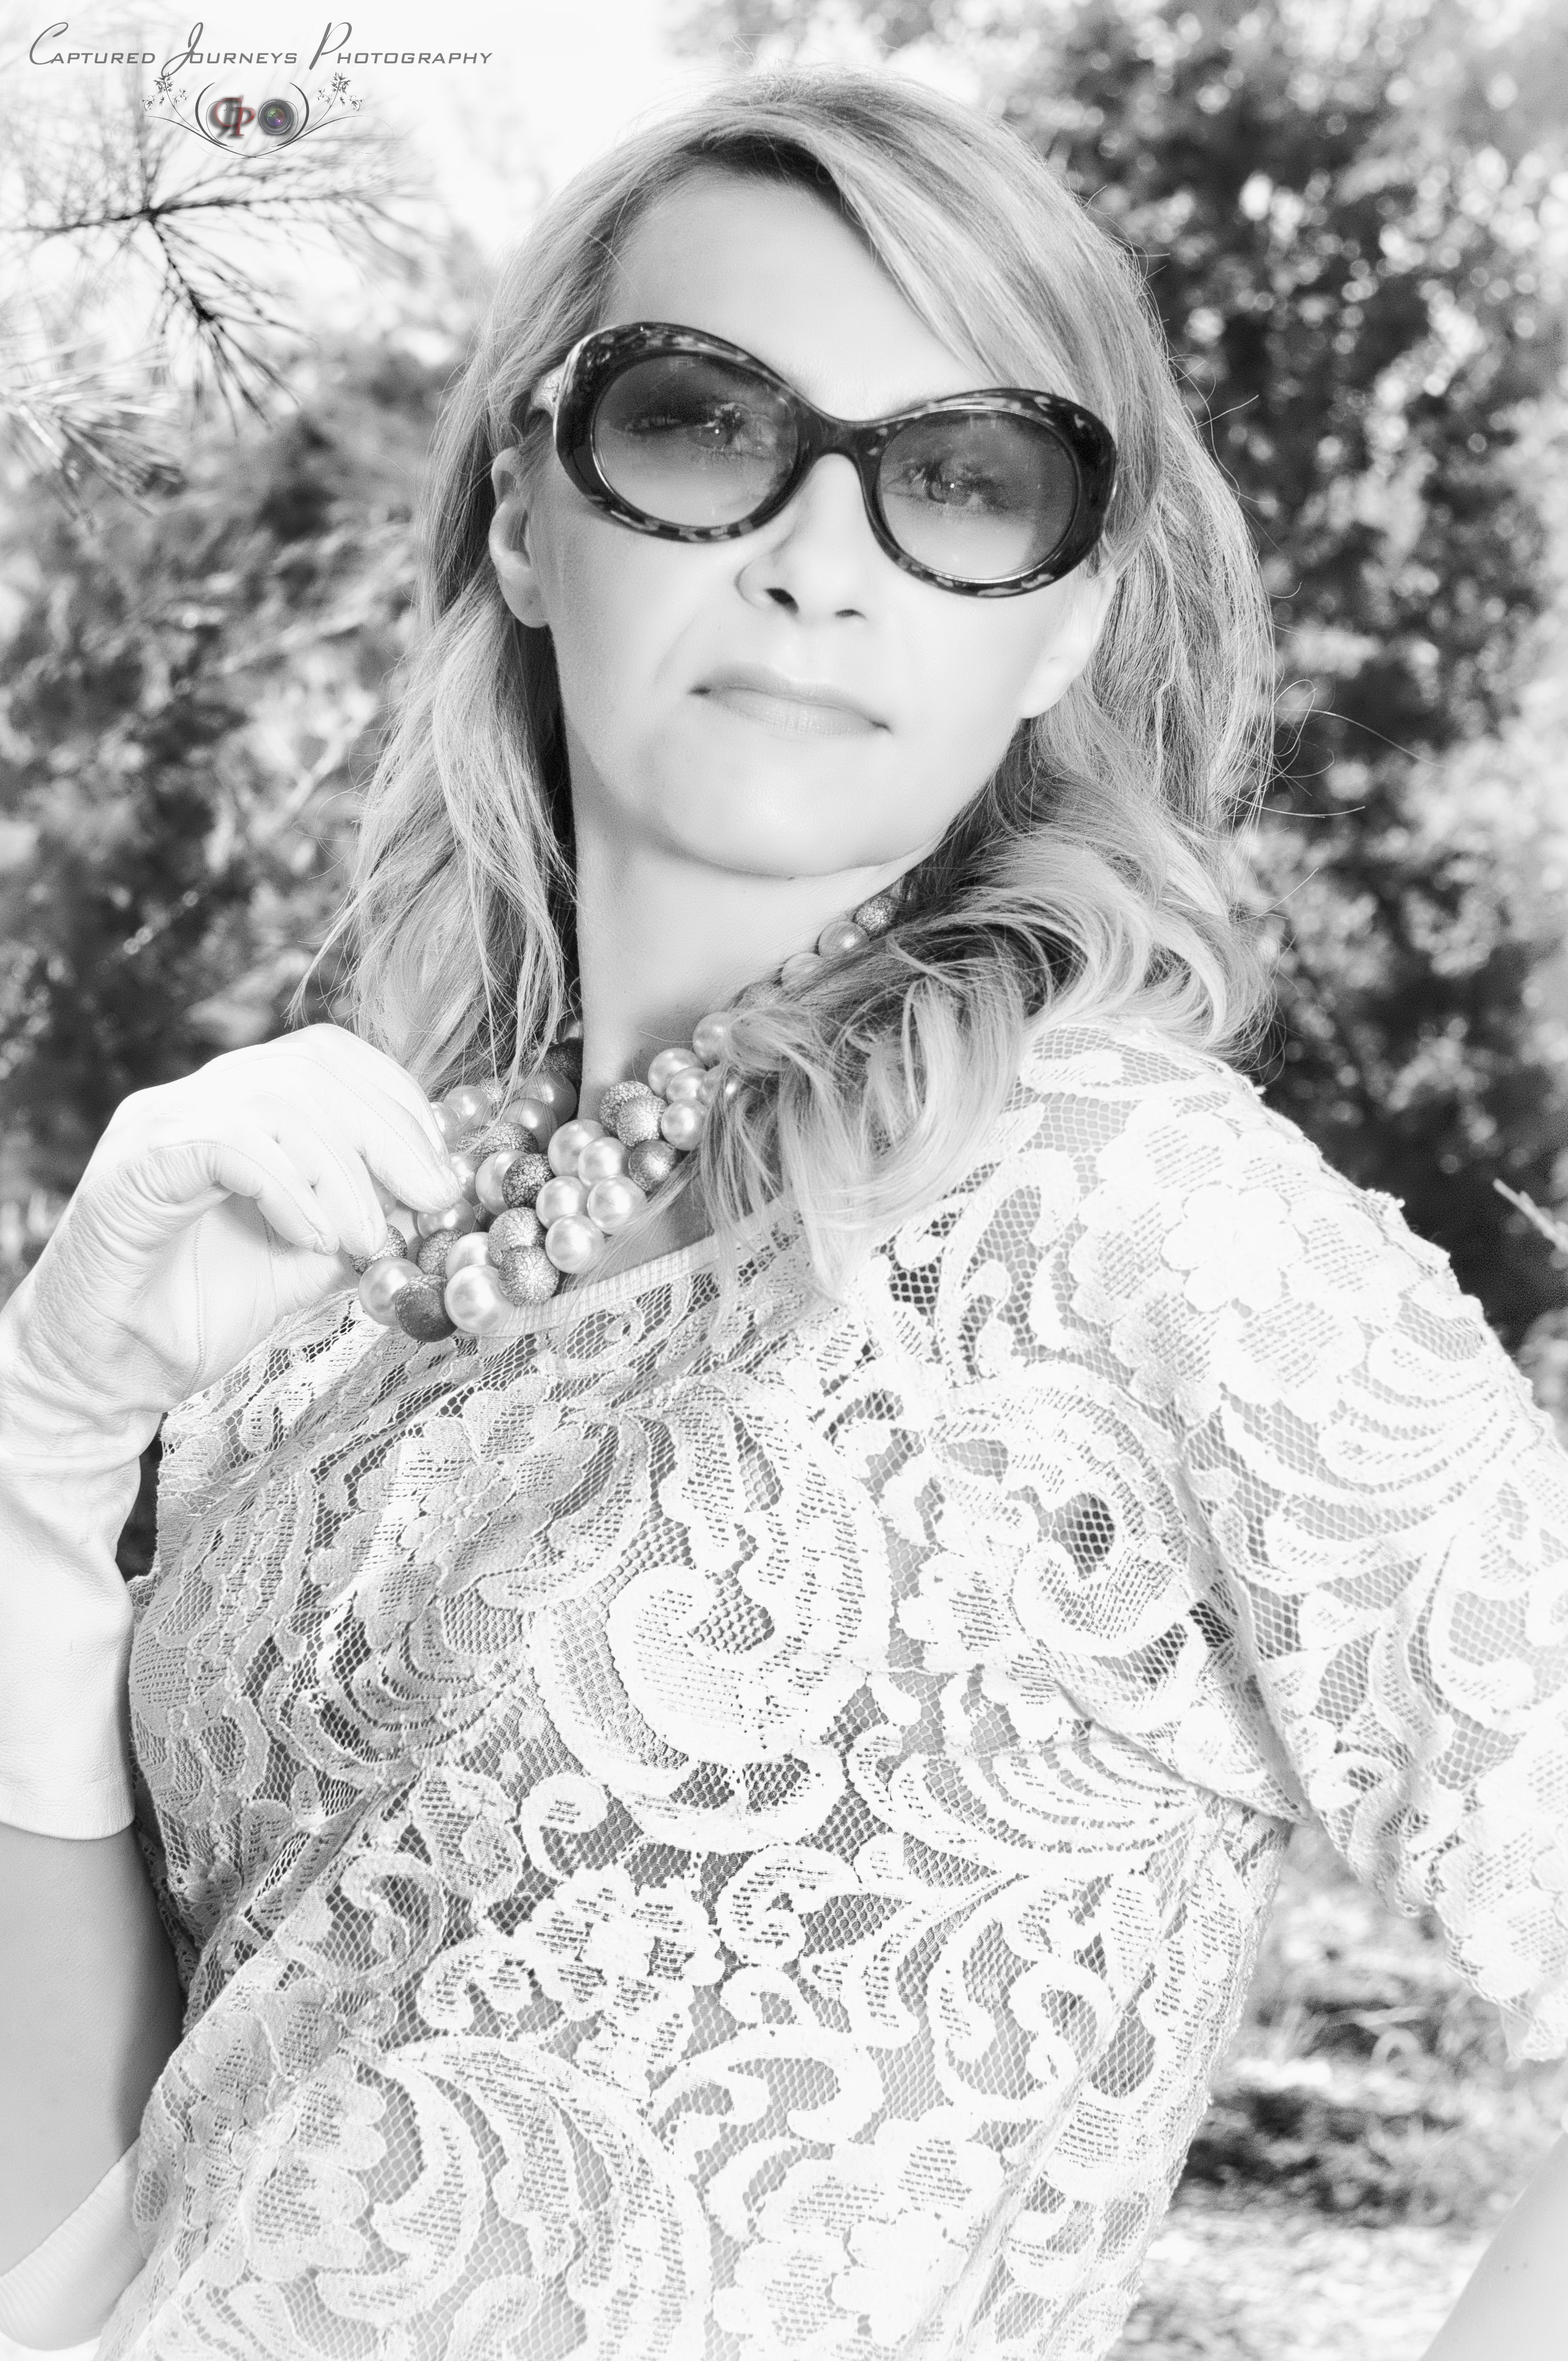 #Hollywood #glamour #pearls #glam #OldHollywood #photo #classicHollywood #ritaHayworth  #glamourHollywood #JackieKennedy style,cat #sunglasses #60's #fashion #pearlswhite gloves #kellySchneider #KalinaSchneider #ChristianLacroixe #sunglasses #vintage